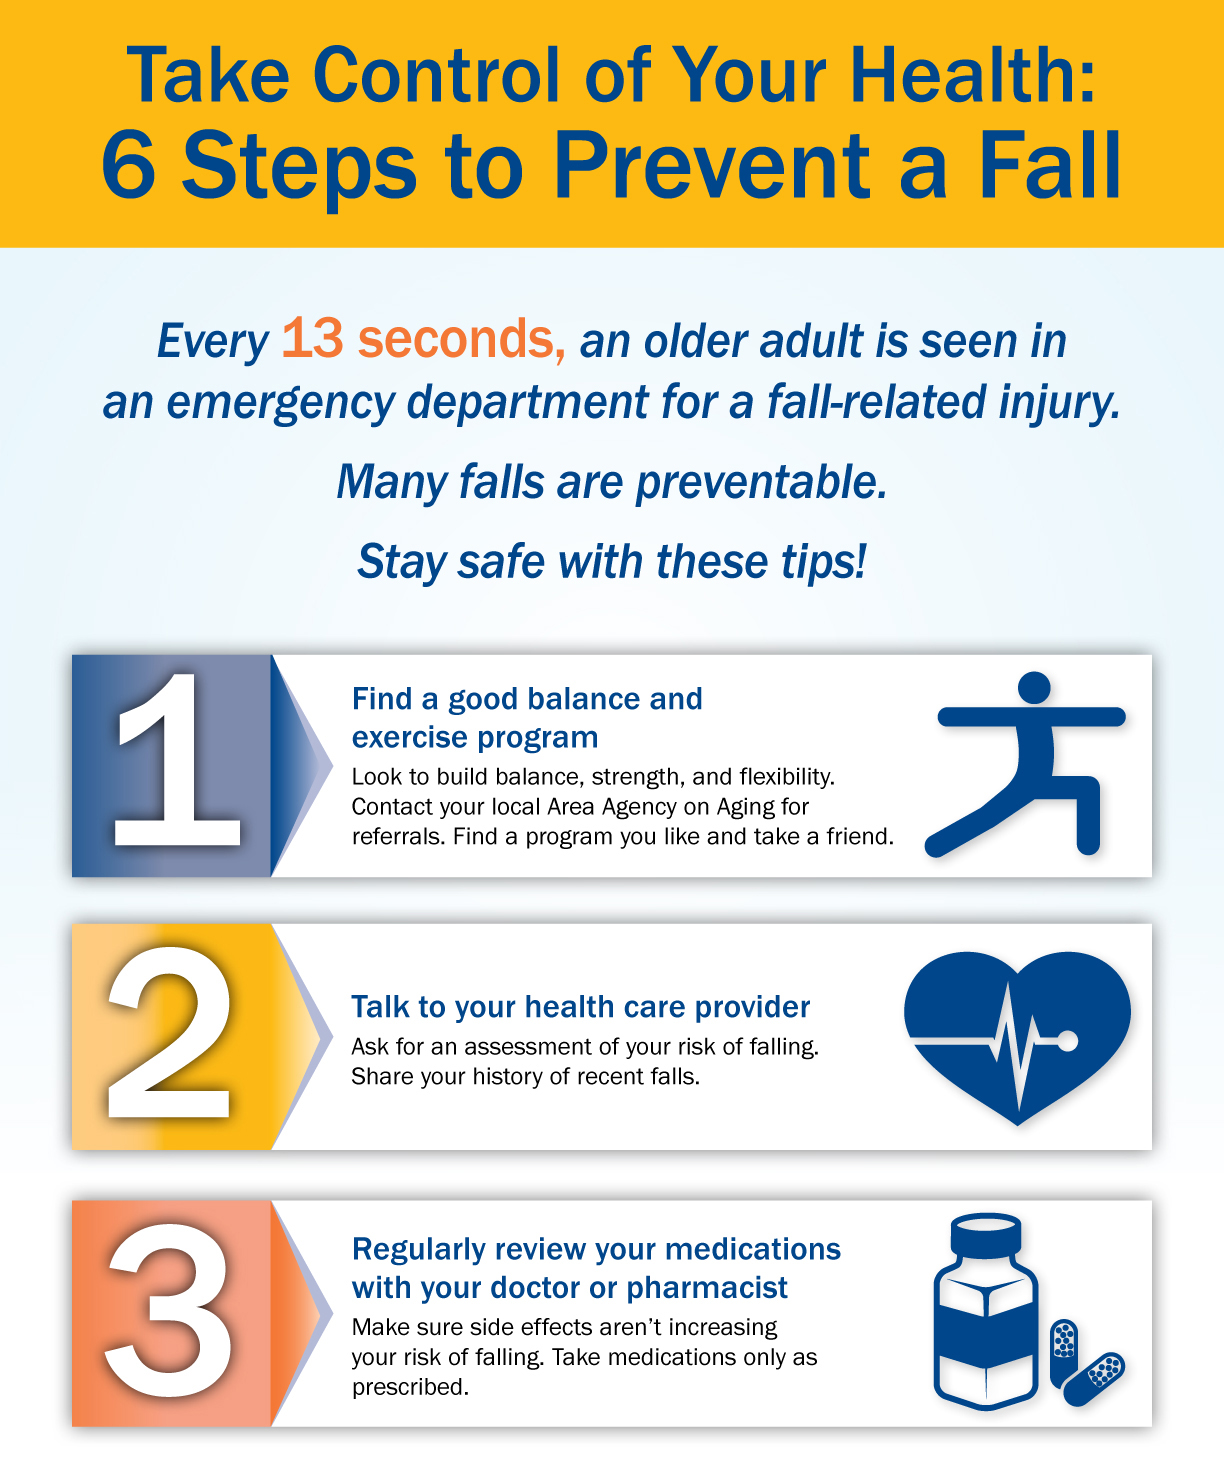 NCOA-6-Steps-to-Prevent-a-Fall-1